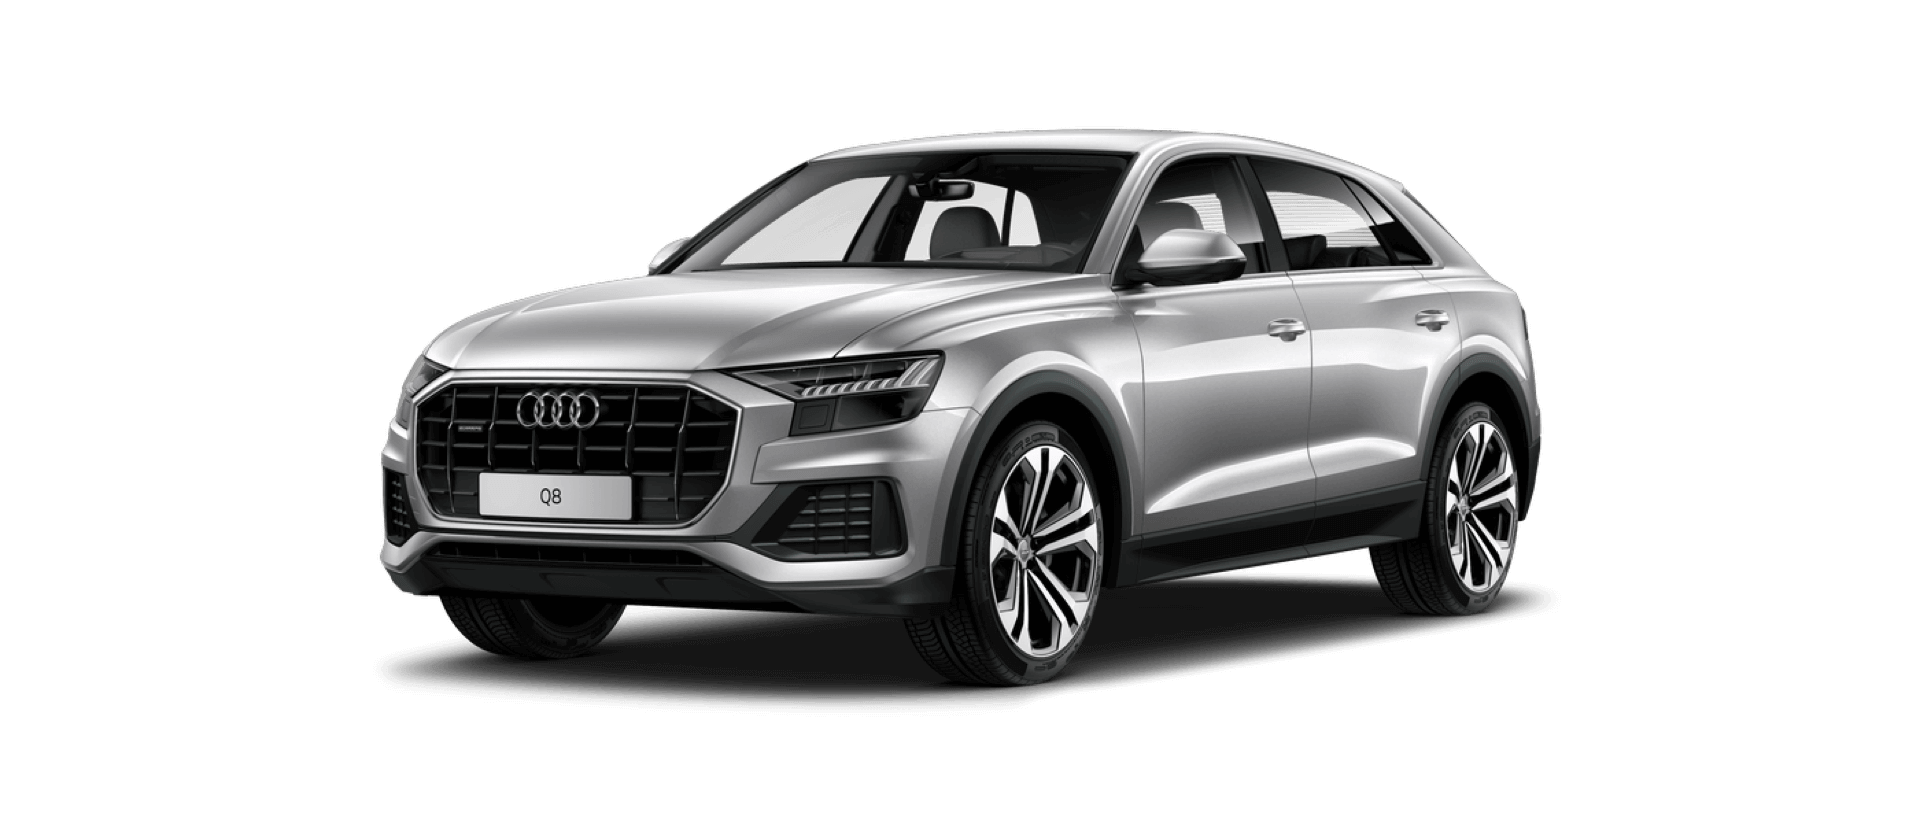 Audi Q8 - NTT Audi - New, Used & Demo Cars for Sale in South Africa